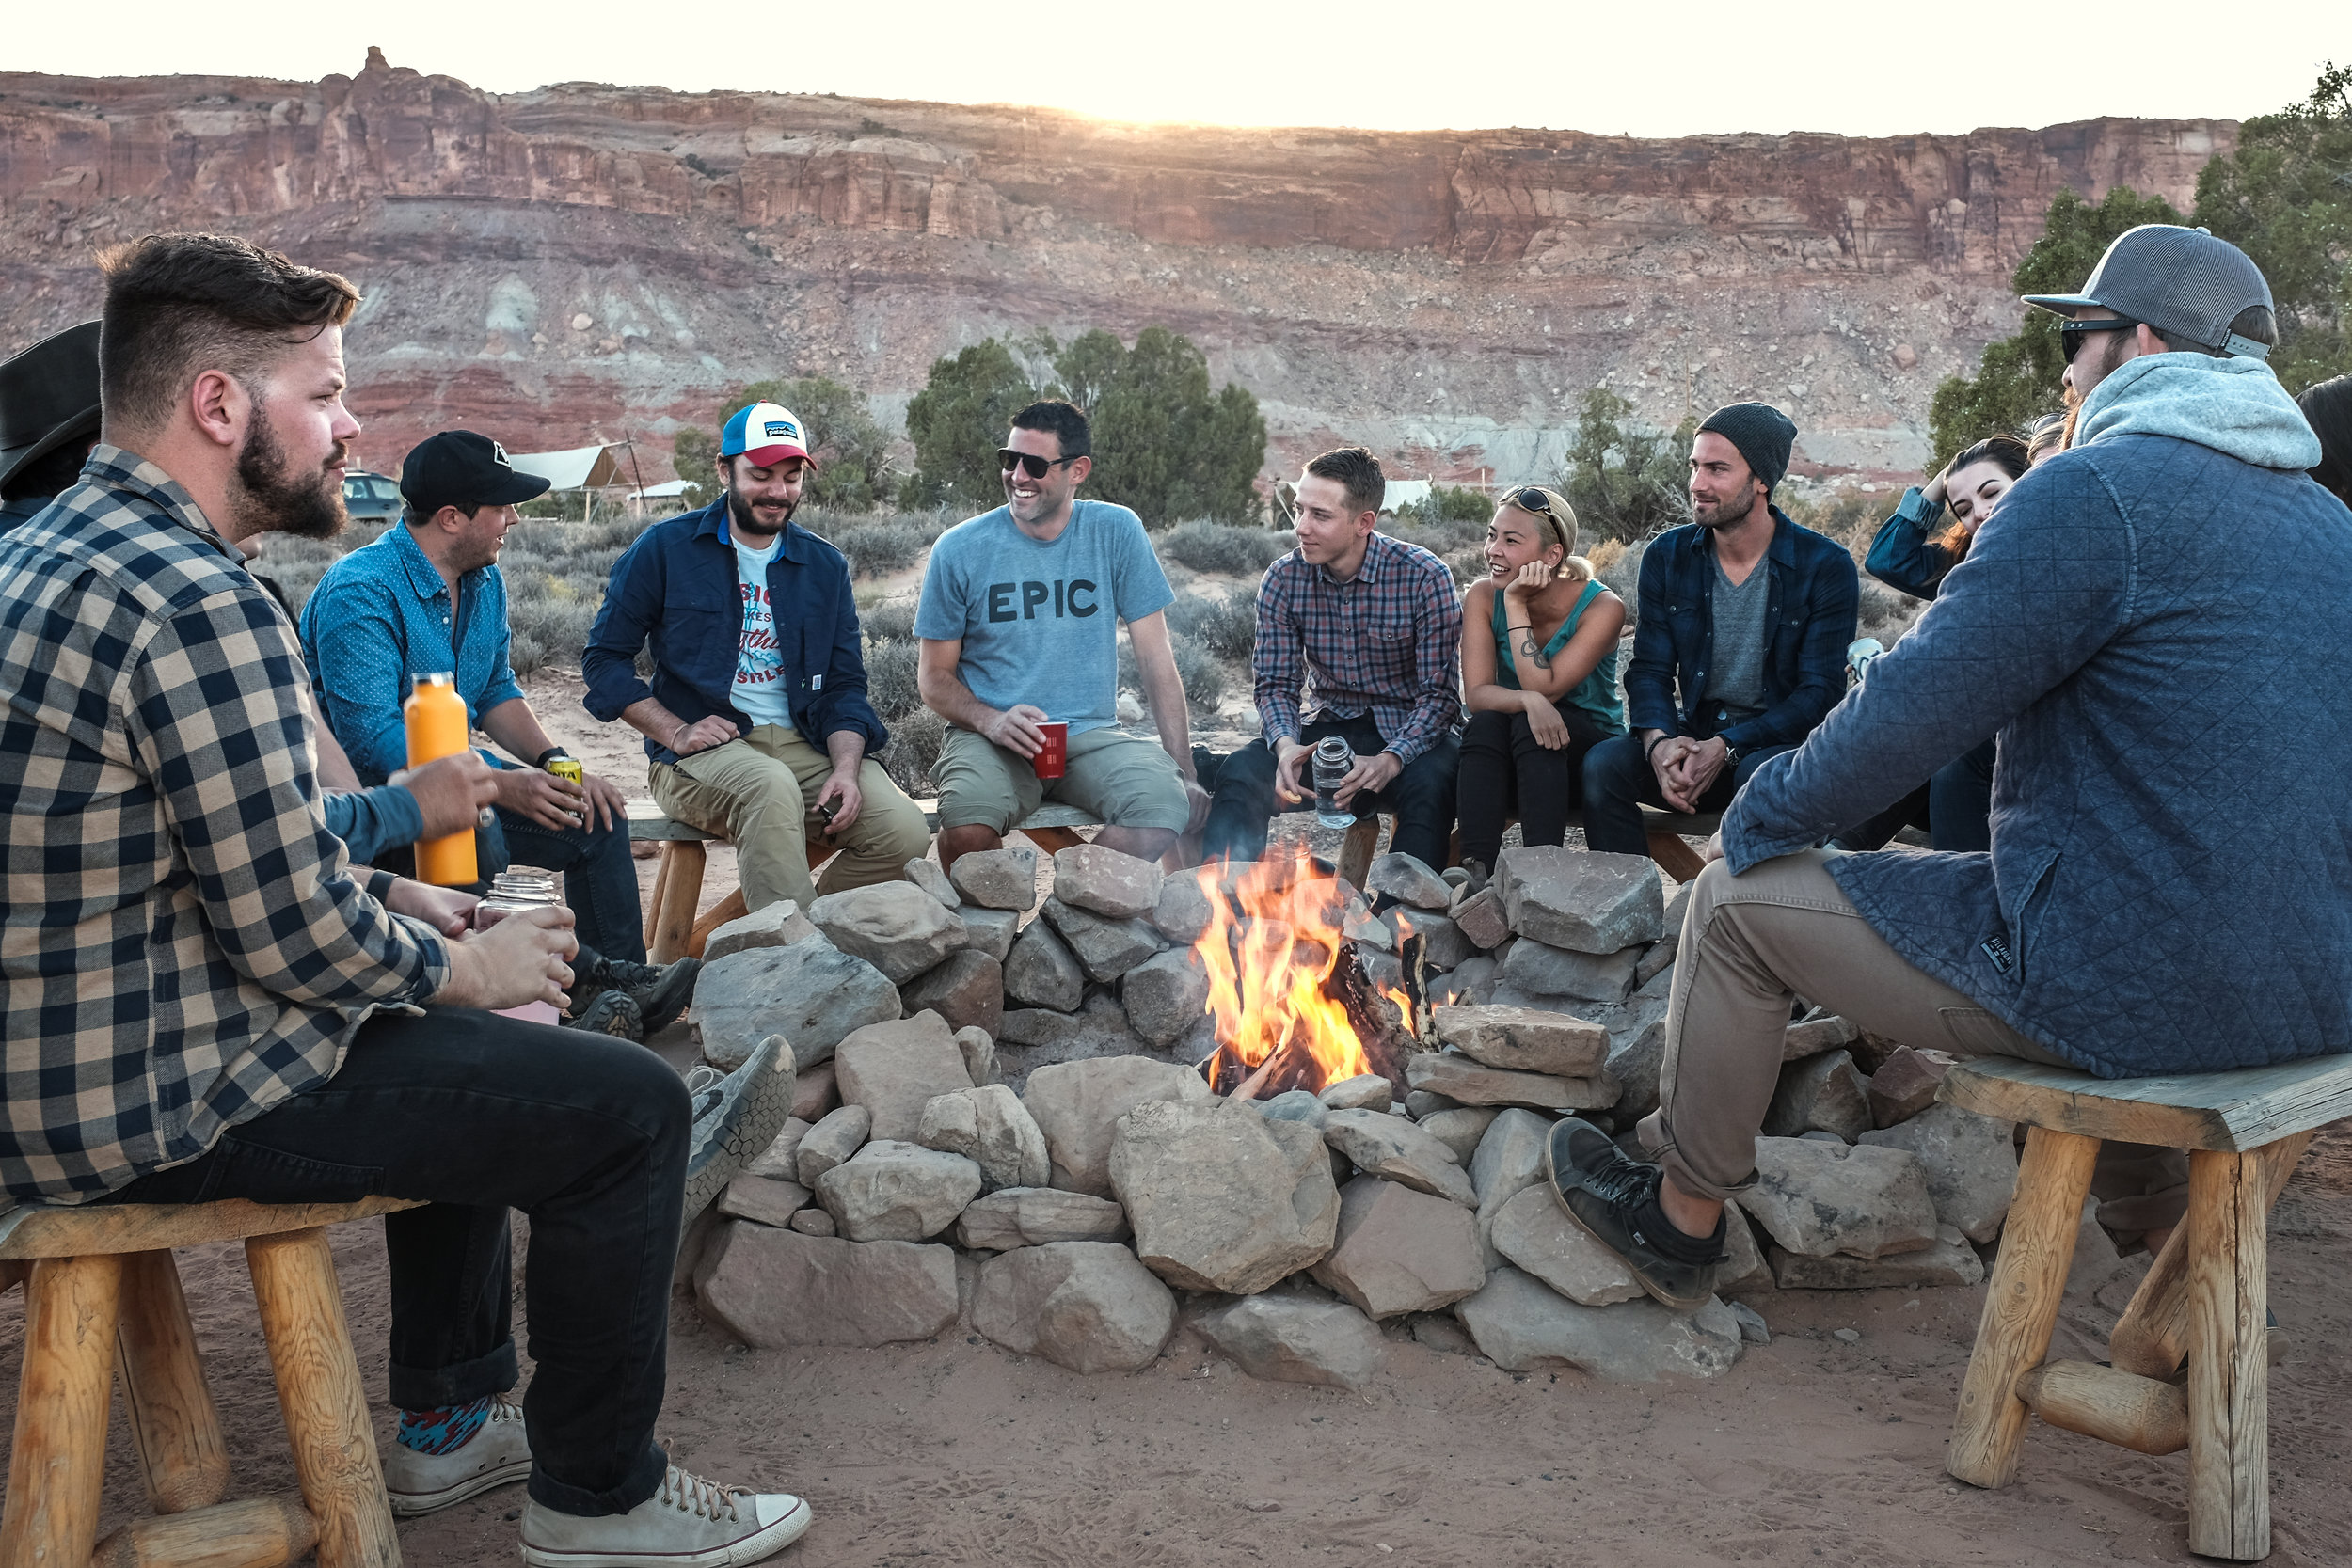 A group of friends sitting around an outdoor fire.